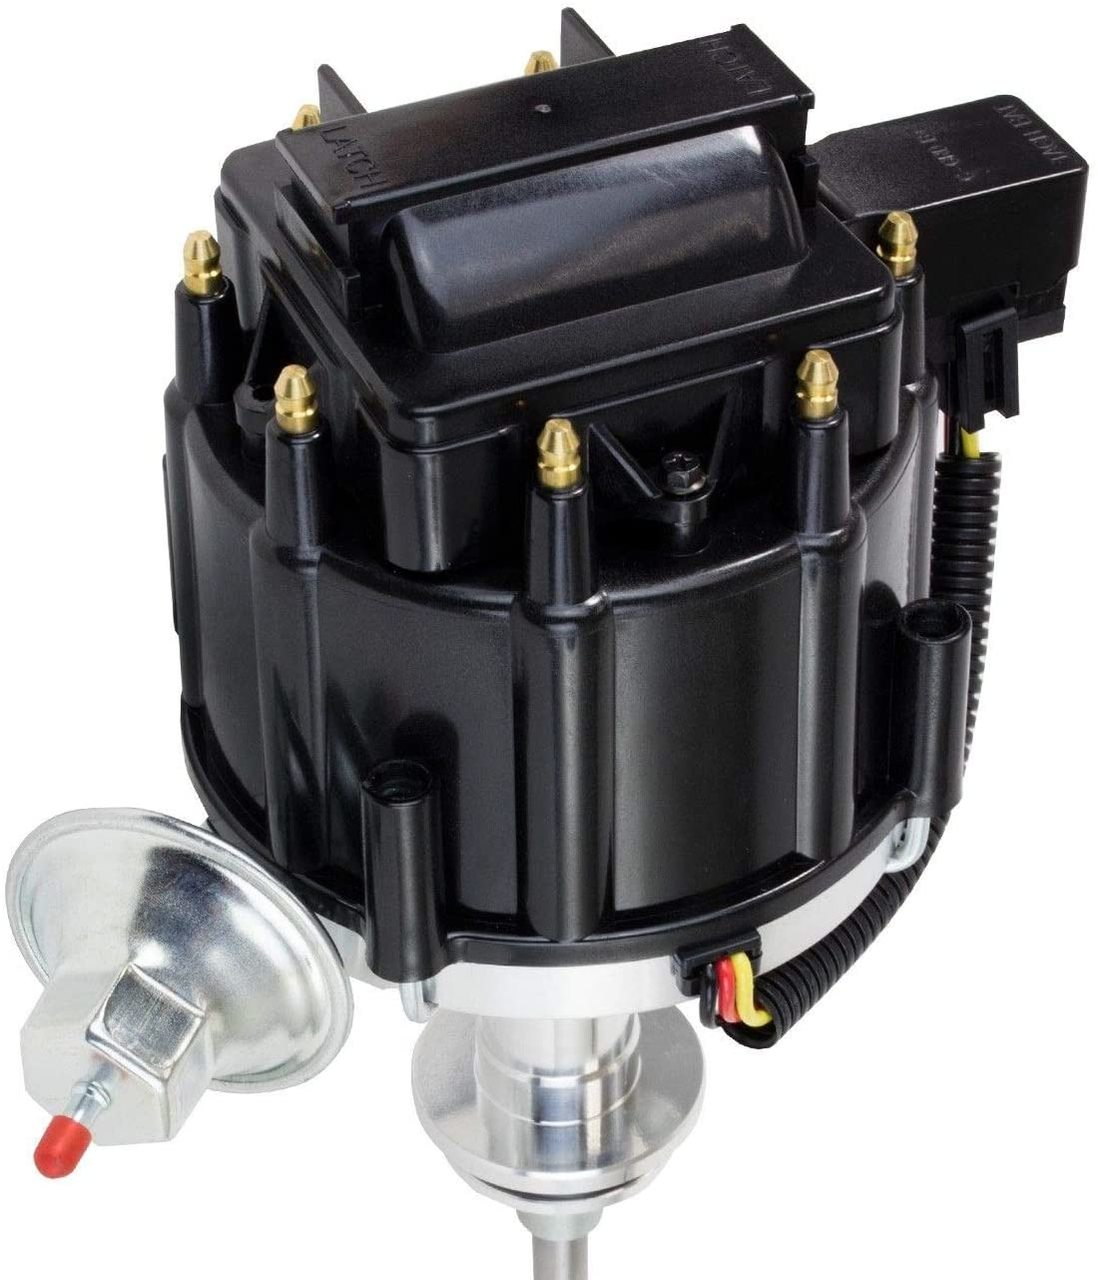 A-Team Performance Chrysler, Dodge, Plymouth V8 Engines 318 340 360 65K COIL